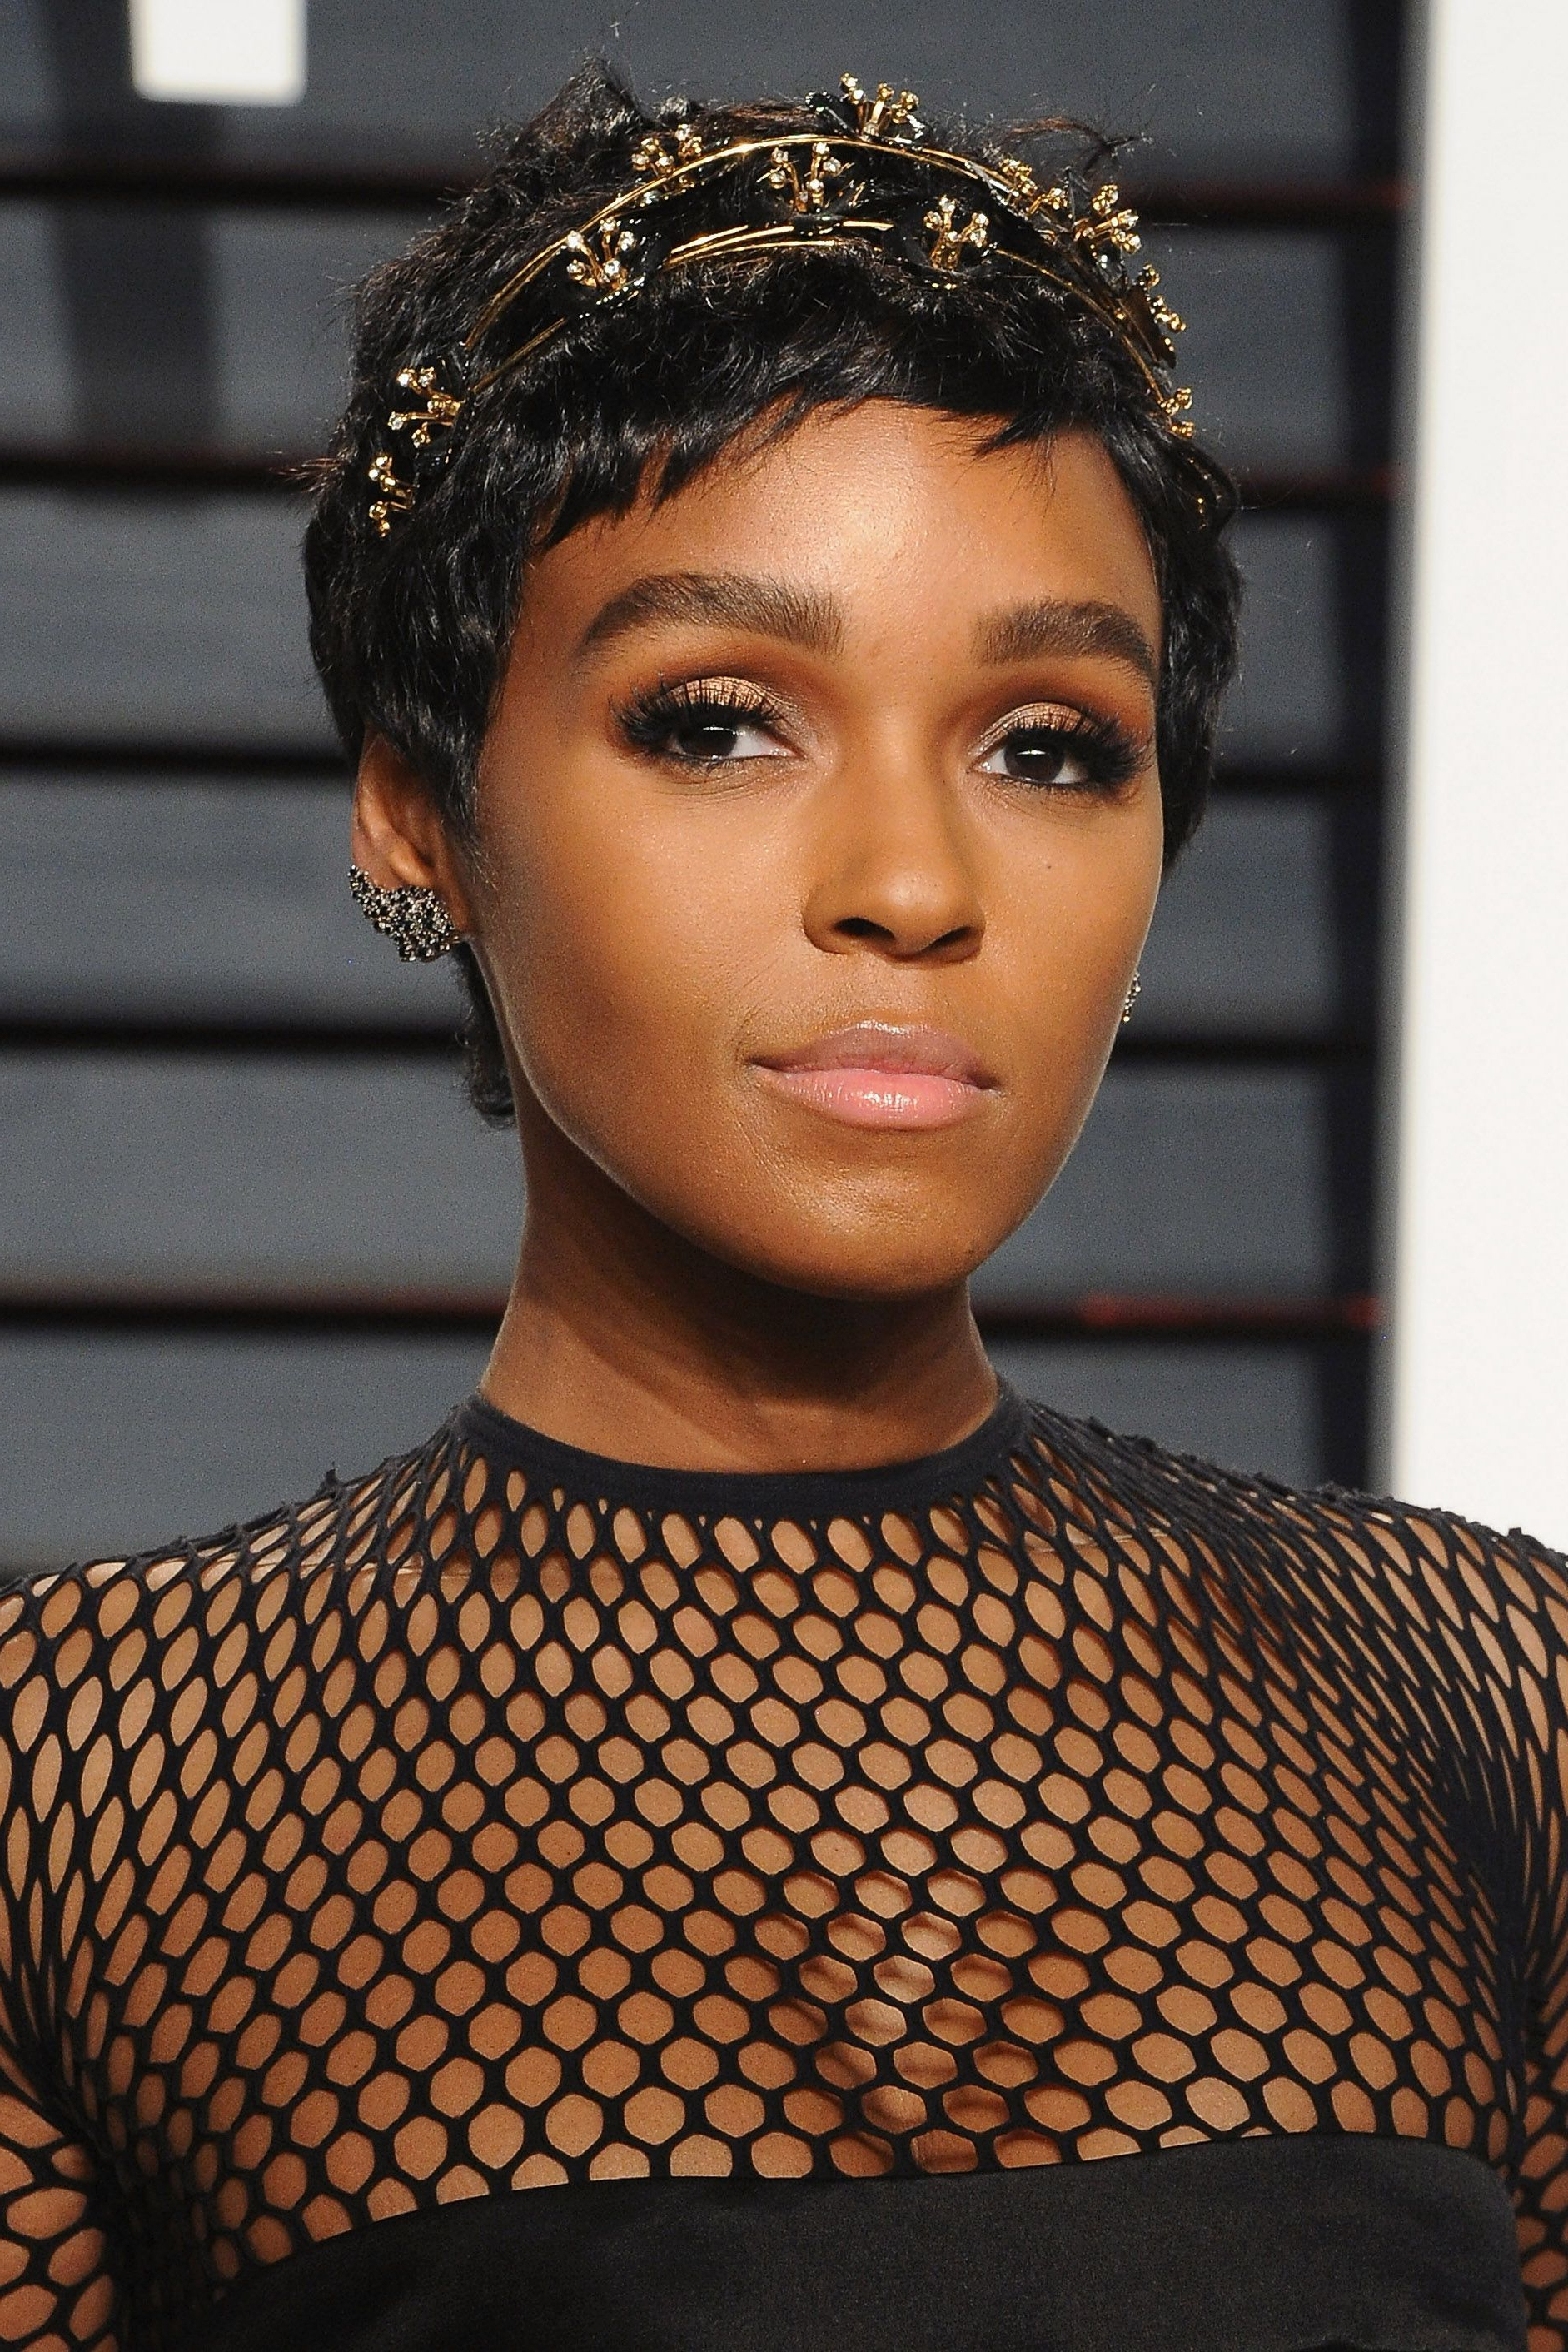 50 Best Pixie Cuts – Iconic Celebrity Pixie Hairstyles Regarding Cute Short Hairstyles For Black Teenage Girls (View 14 of 25)